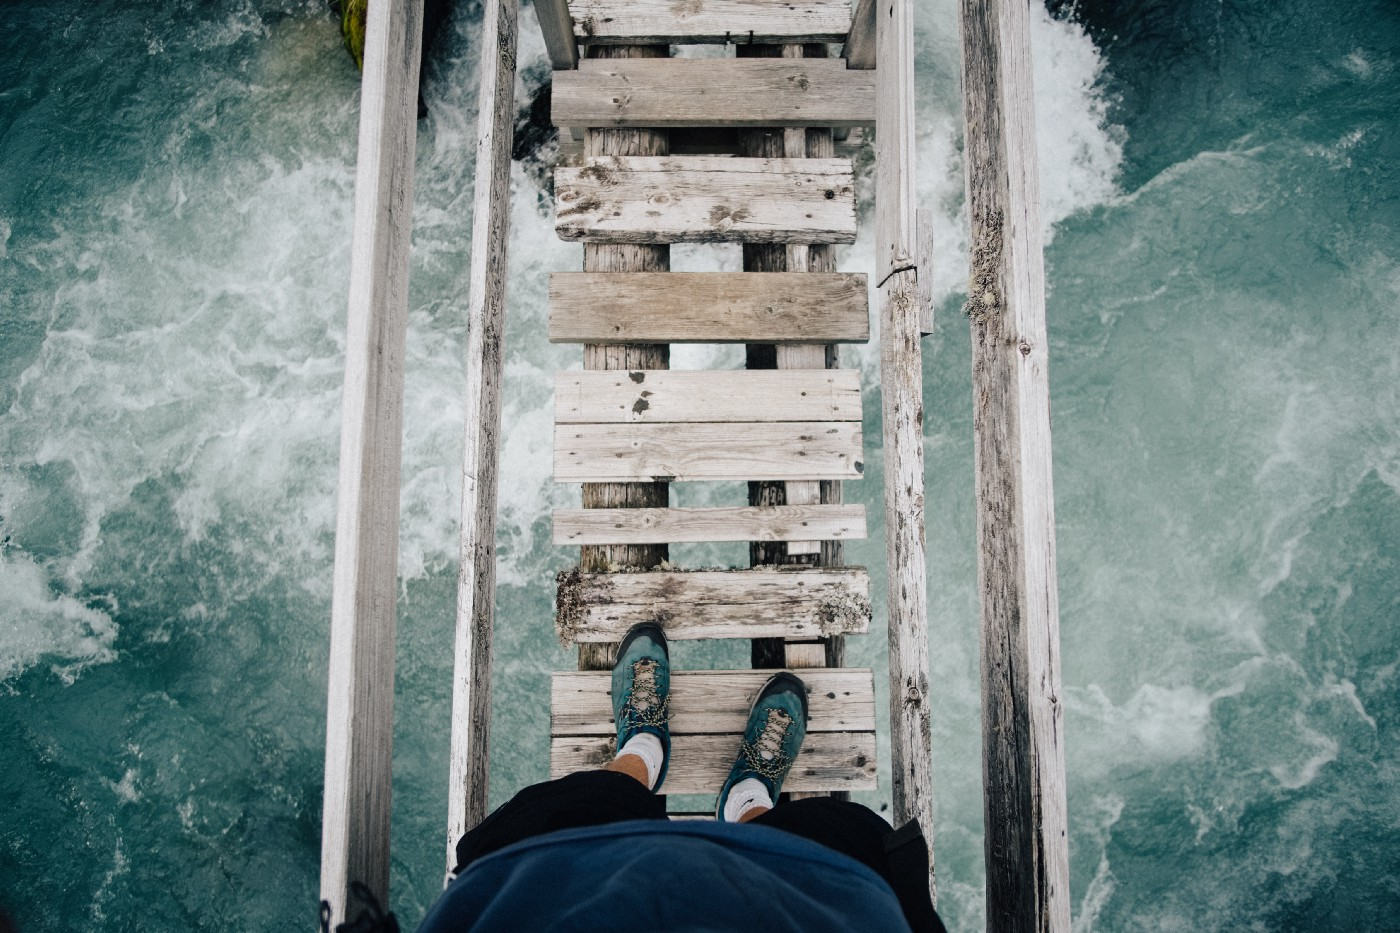 Feel the fear and do it—step by step over a rickety bridge over water